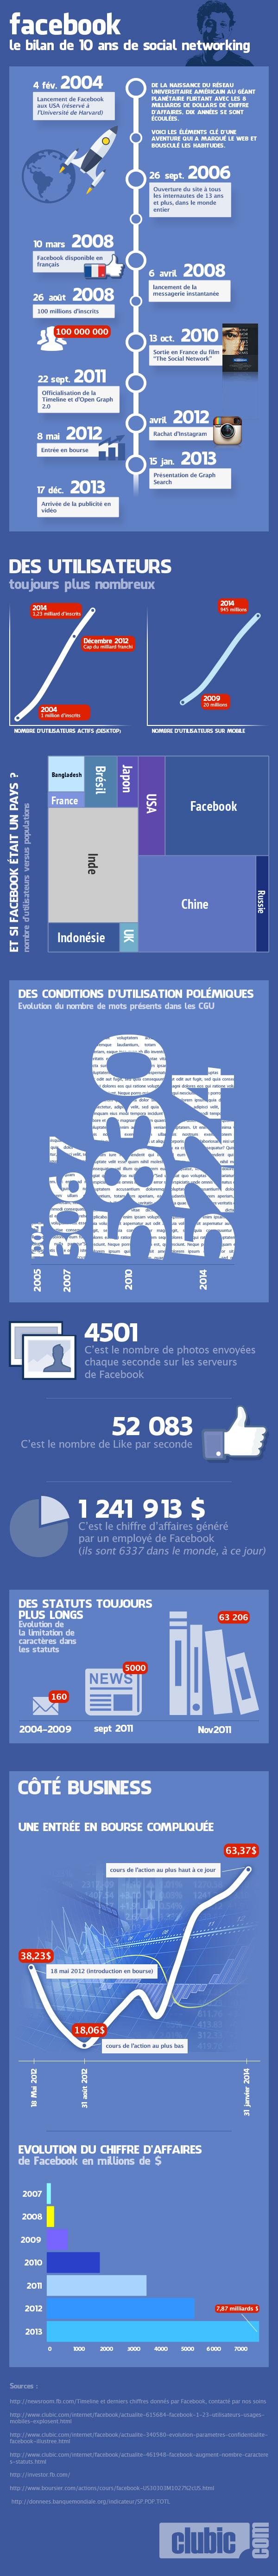 07126016-photo-infographie-facebook-10-ans